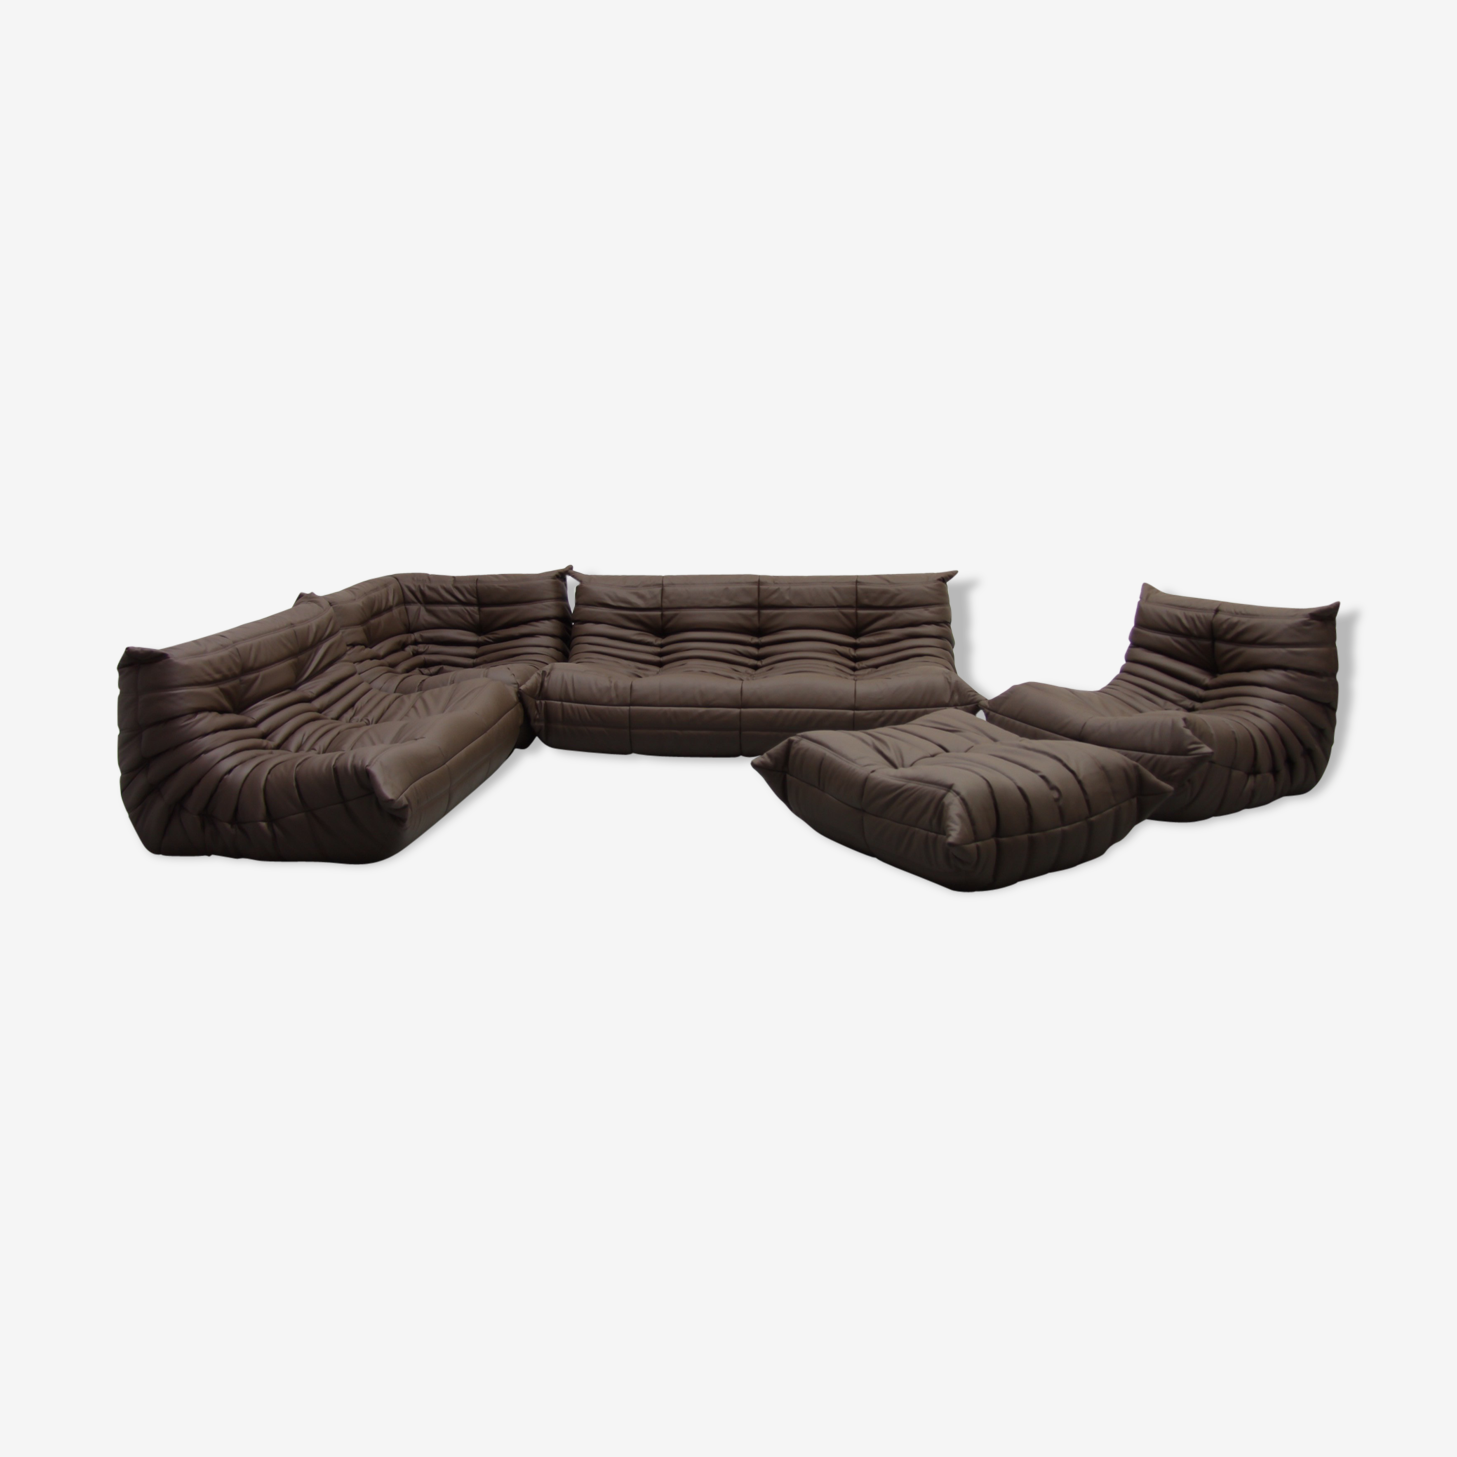 """Togo"" sofa set in leather by Michel Ducaroy for line Roset"